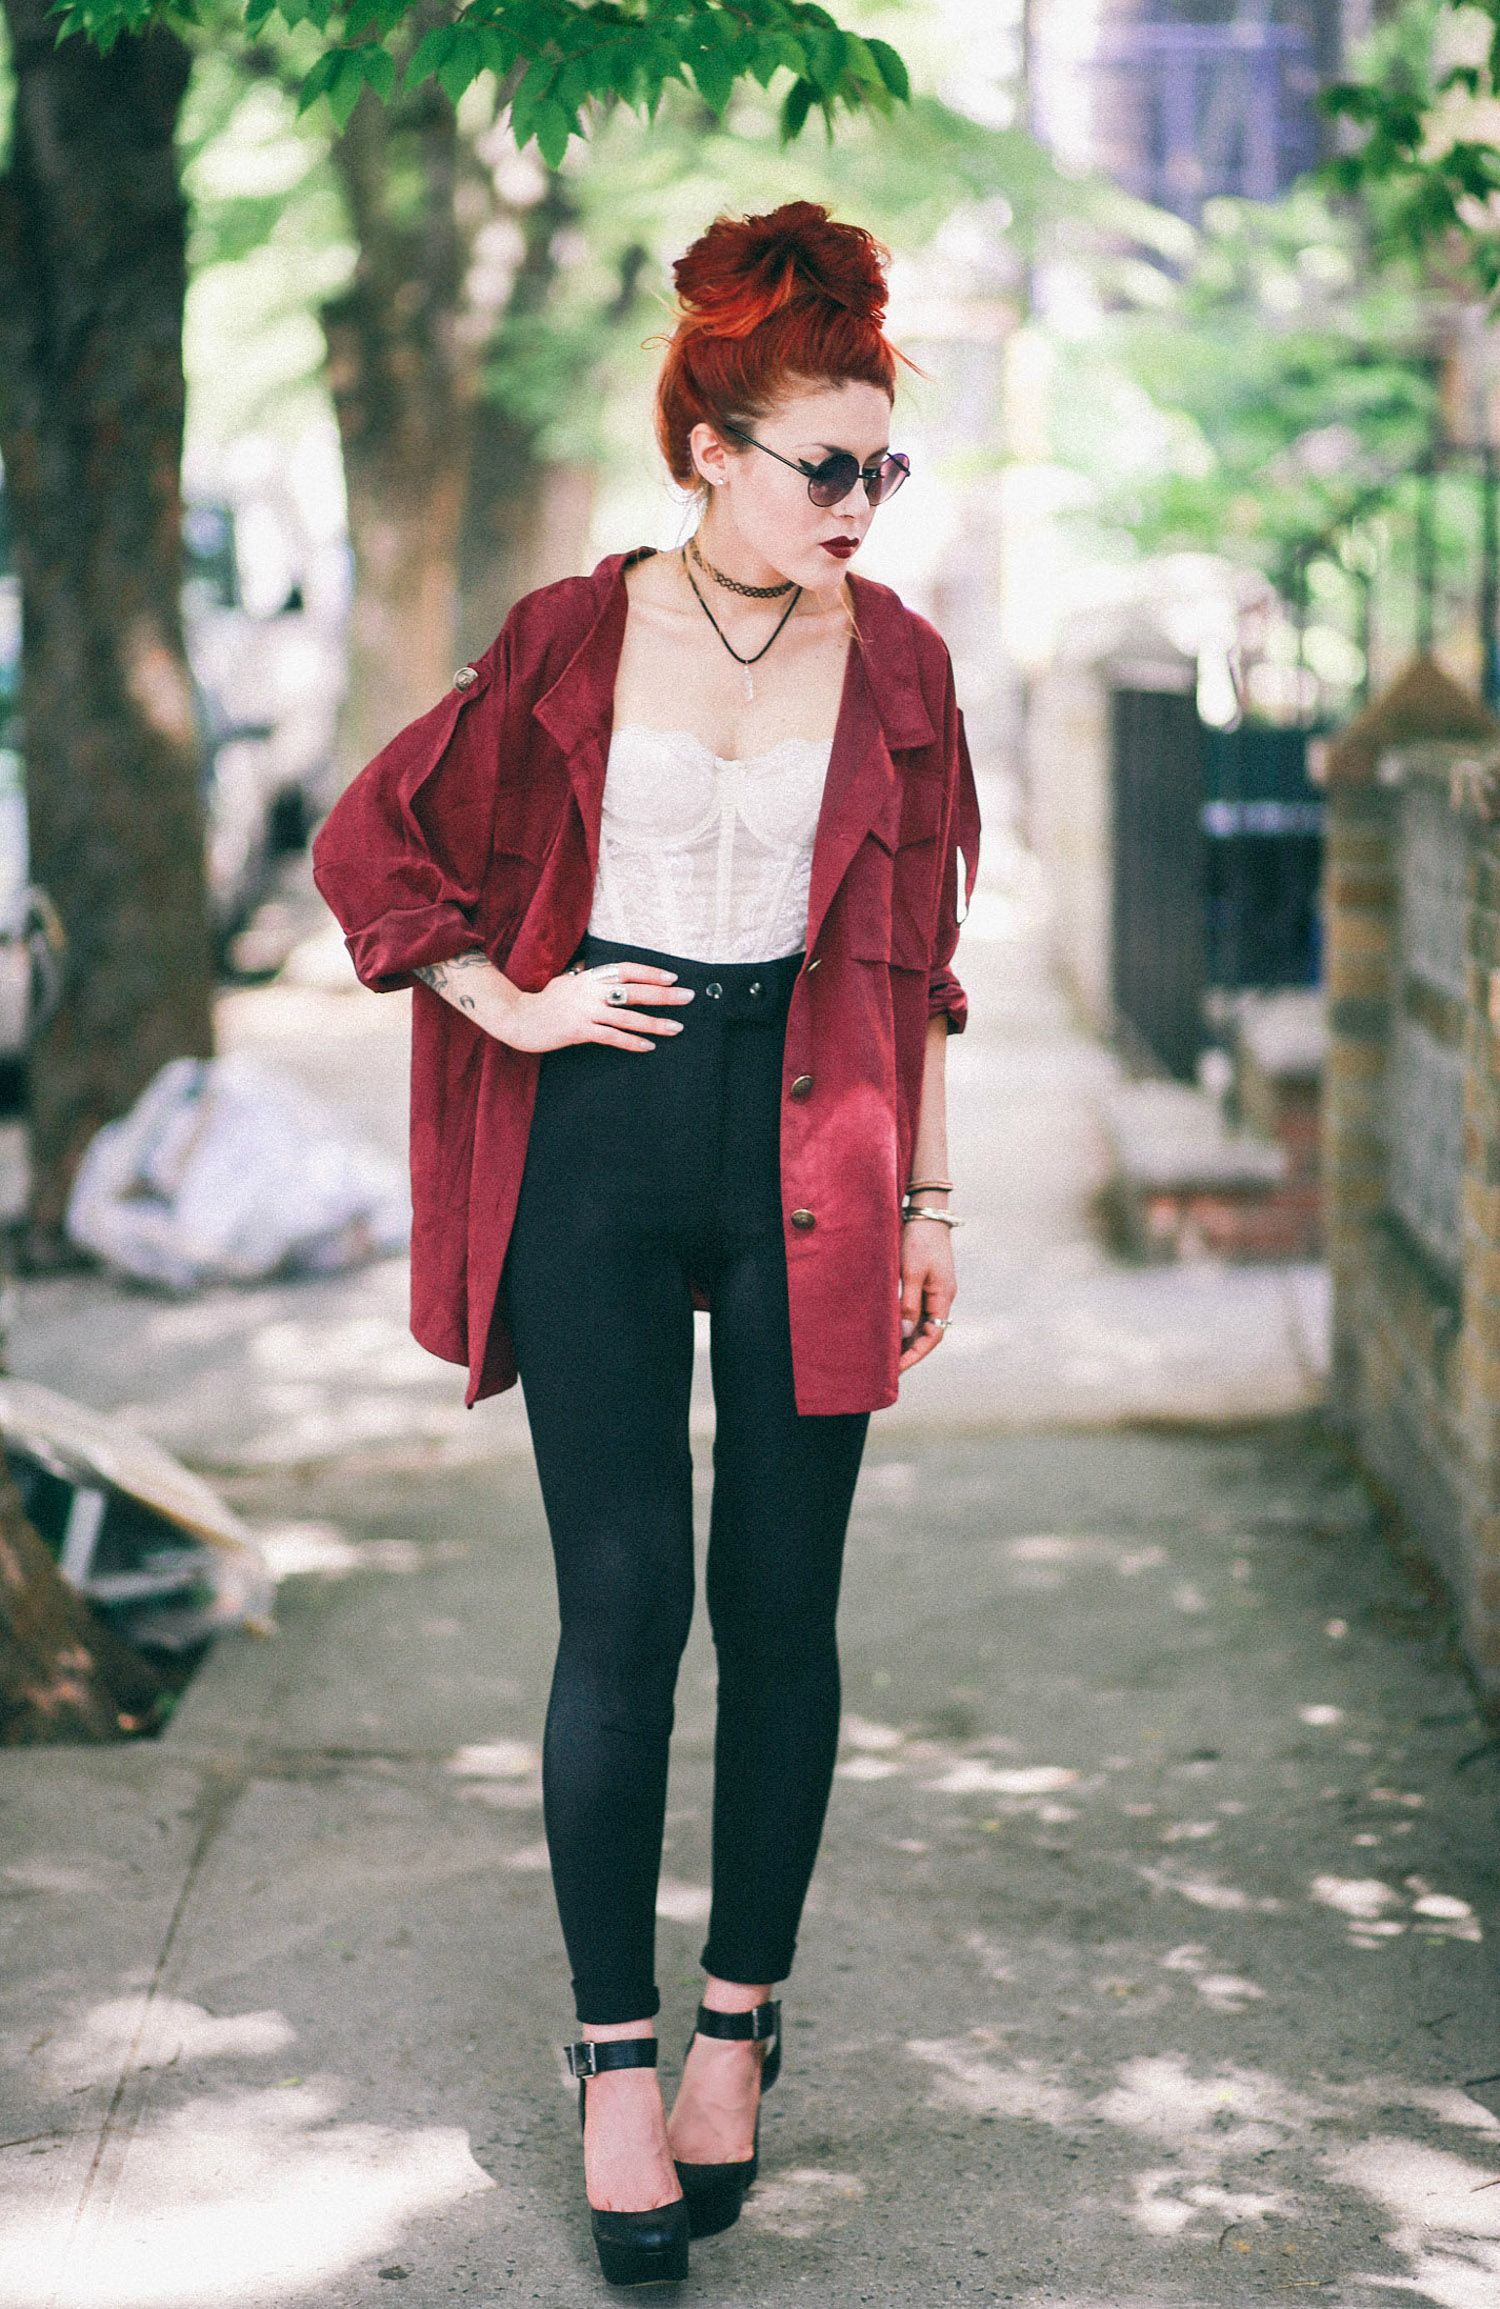 Gorgeousuc black skinny jeans and white corset with red overshirt